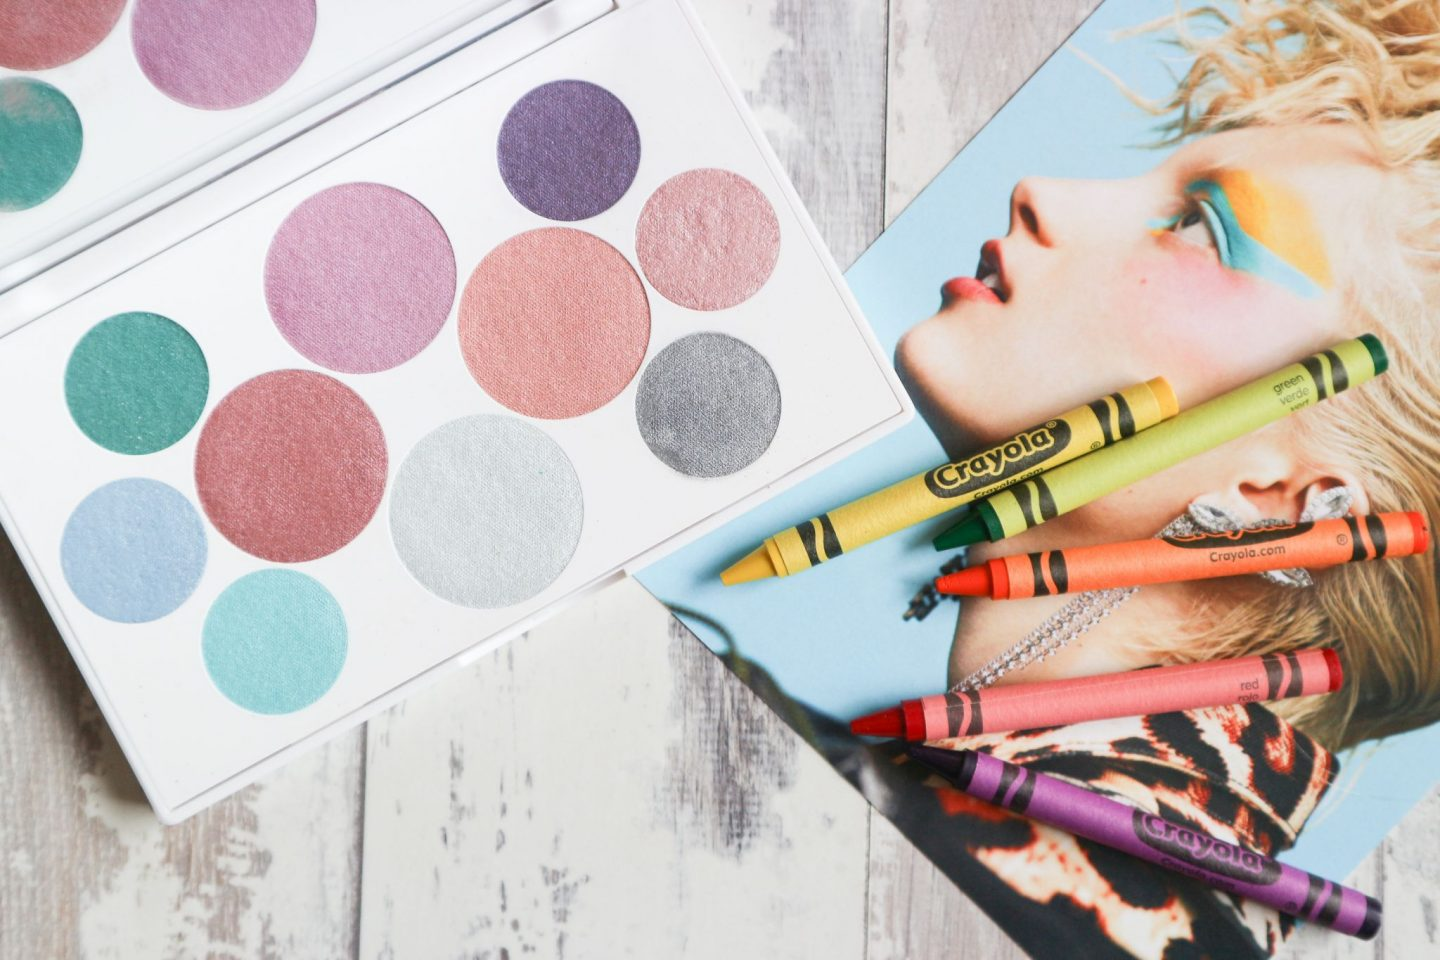 Crayola Eyeshadow Palette Mermaid